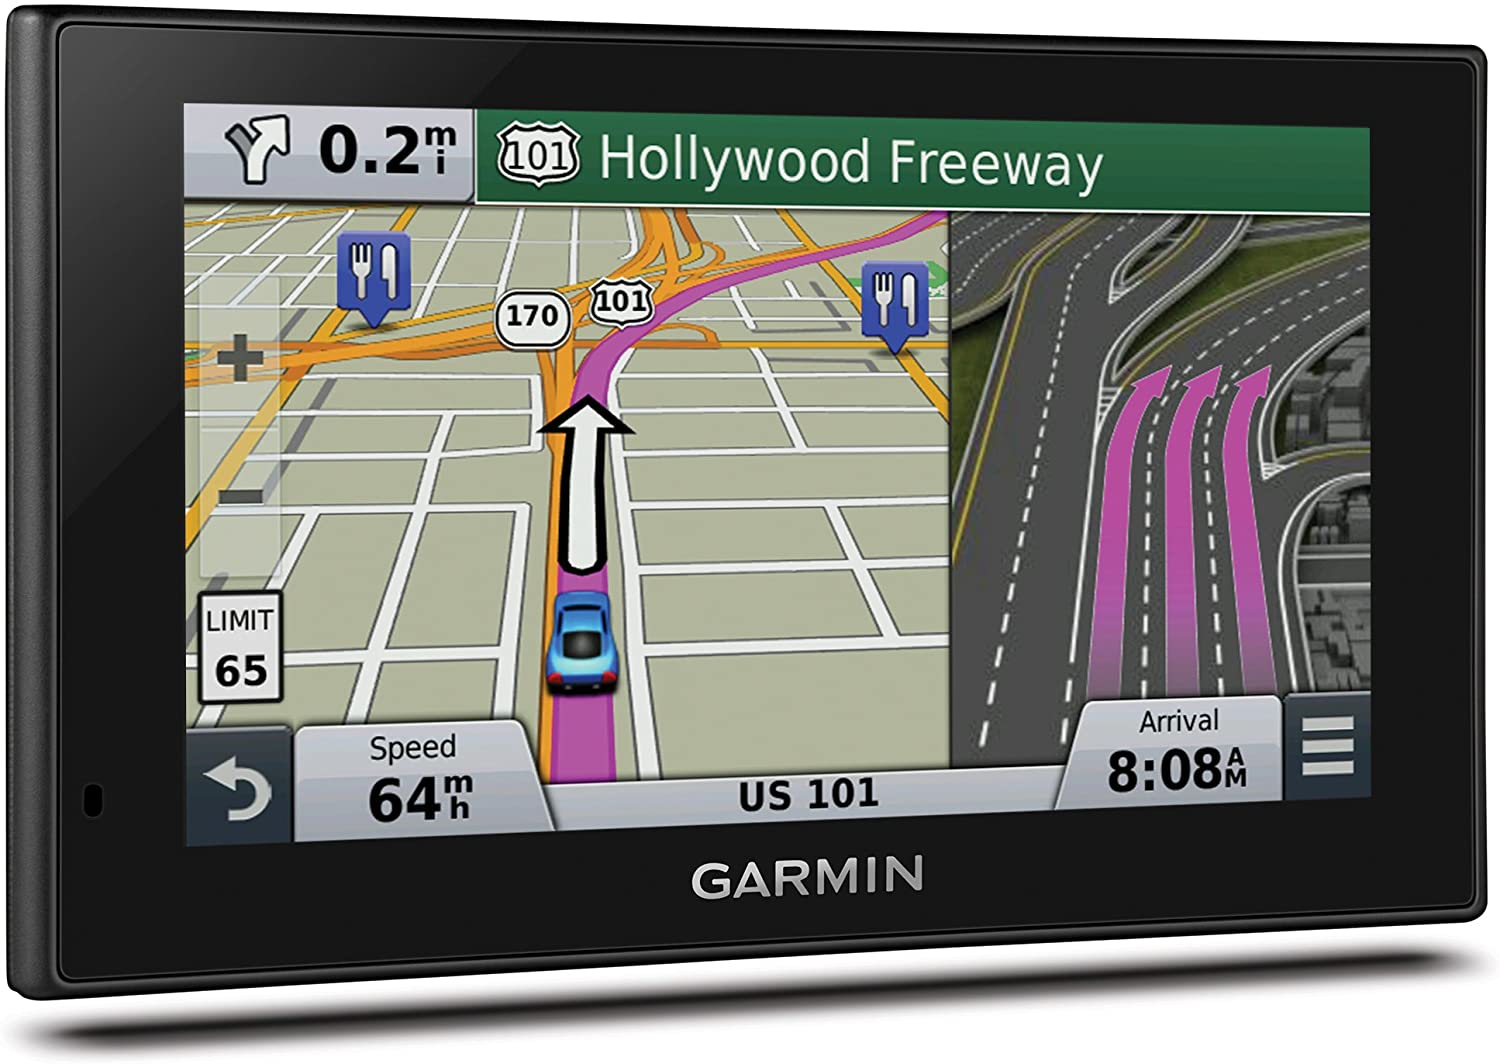 Garmin Nuvi 2589 LMT Review